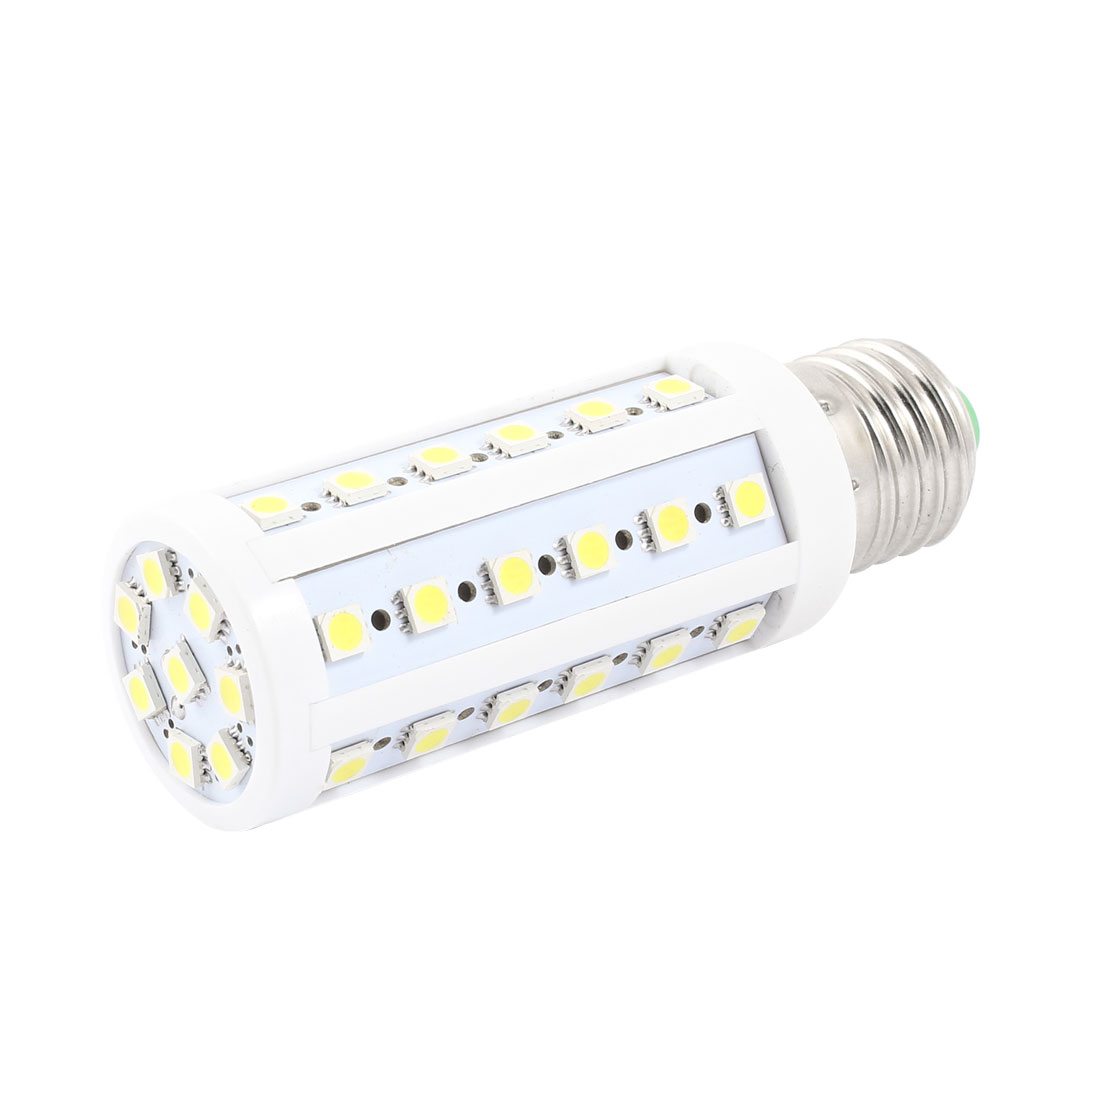 AC 110/220V 792LM E27 Socket Pure White 44 SMD 5050 LEDs Light Lamp Bulb 9W